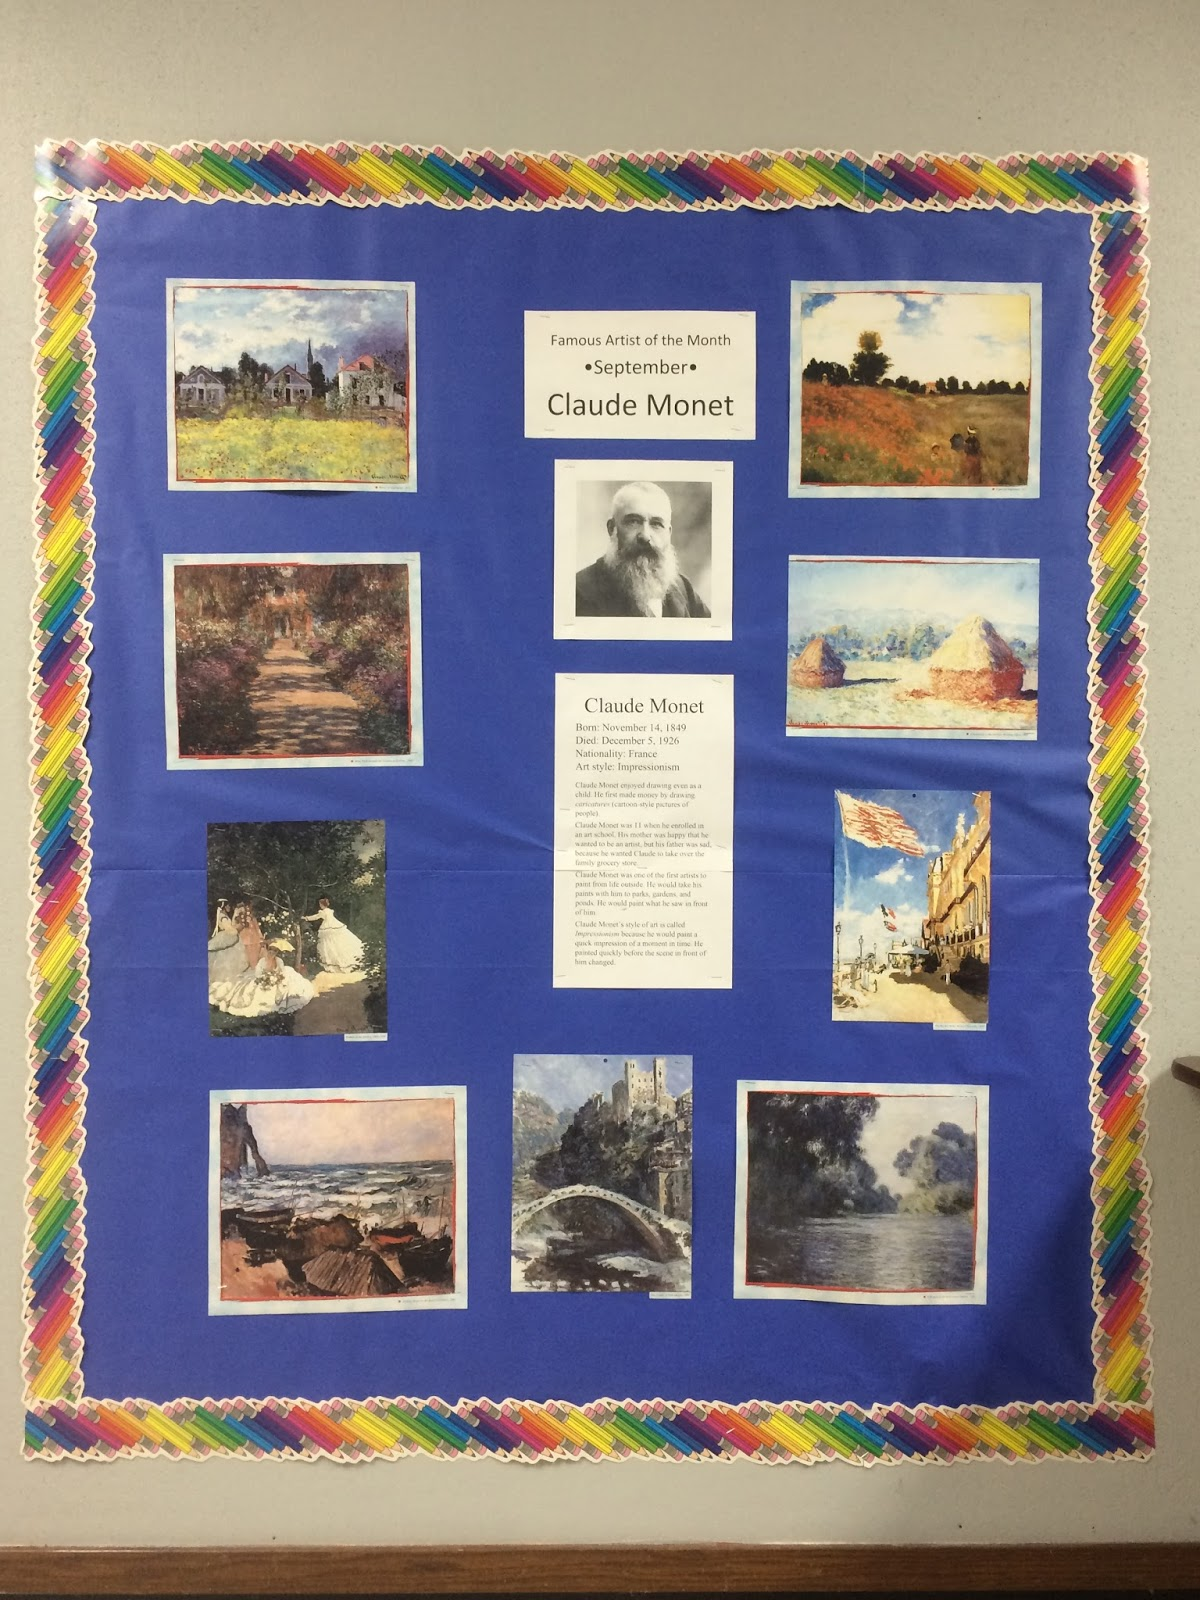 Miss Young's Art Room: September Famous Artist of the Month: Claude